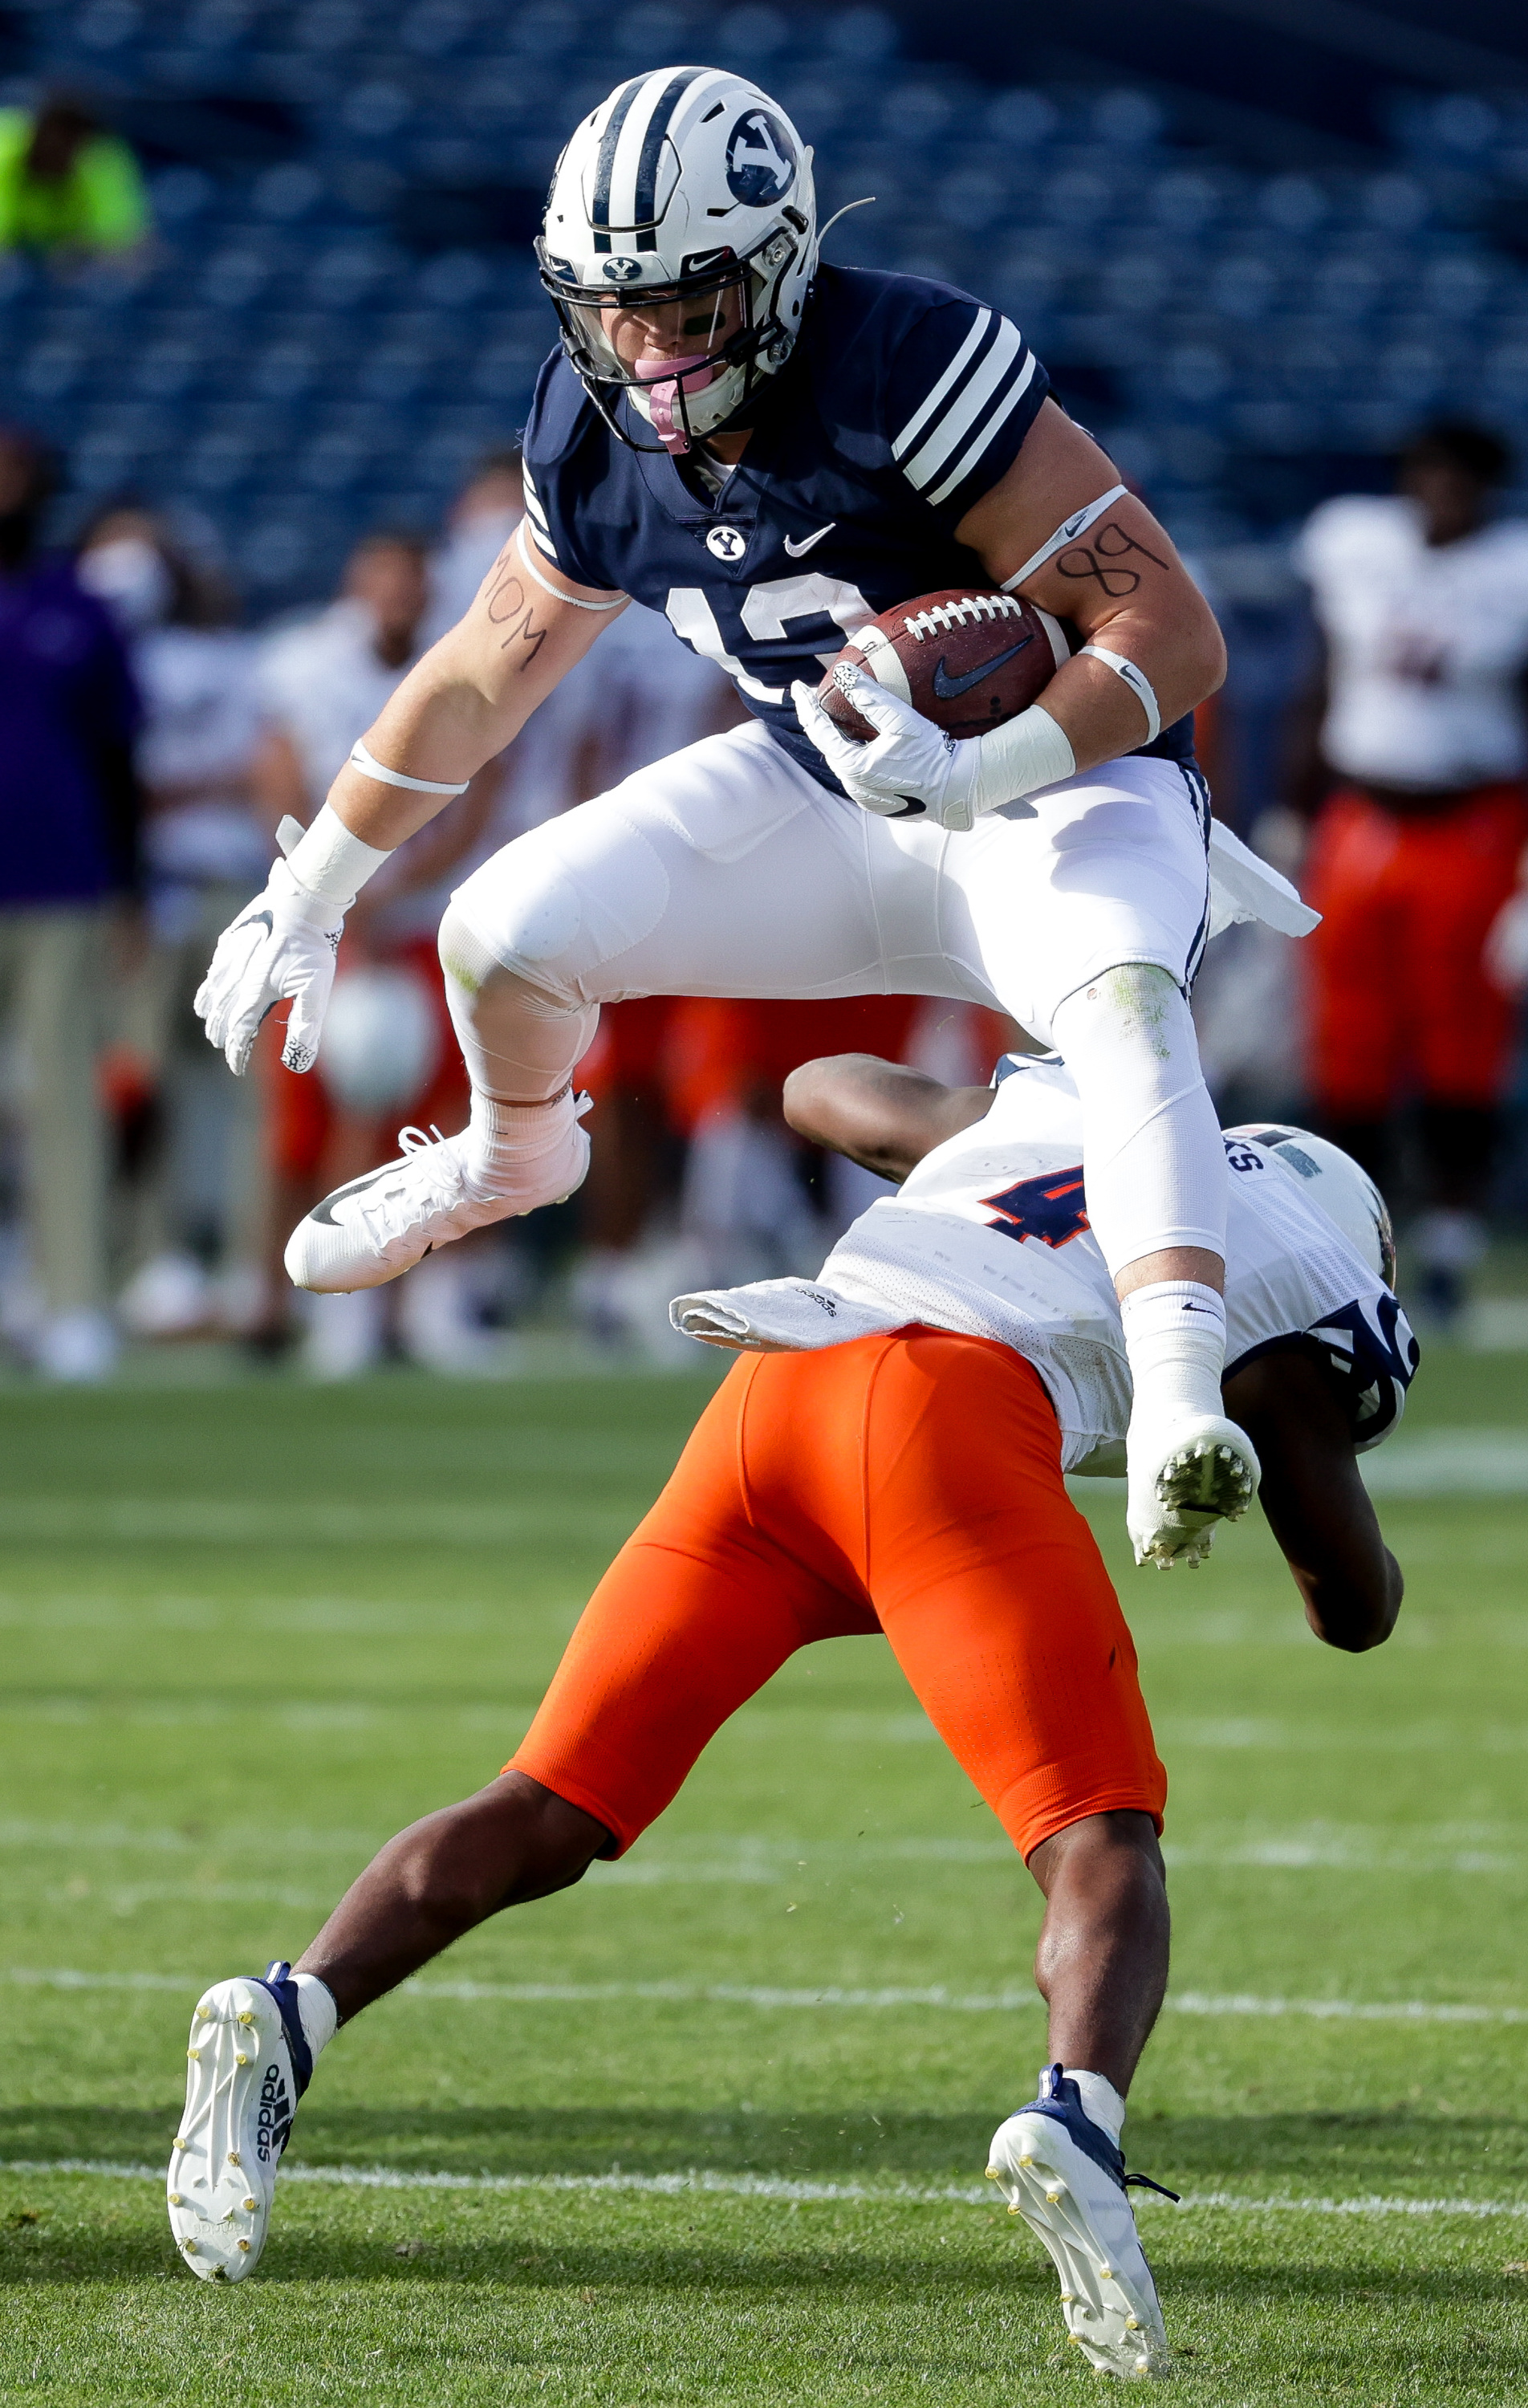 Brigham Young Cougars tight end Masen Wake (13) leaps over UTSA Roadrunners safety Antonio Parks (4), but the play is called back due to an offensive holding call, during the game at LaVell Edwards Stadium in Provo on Saturday, Oct. 10, 2020.